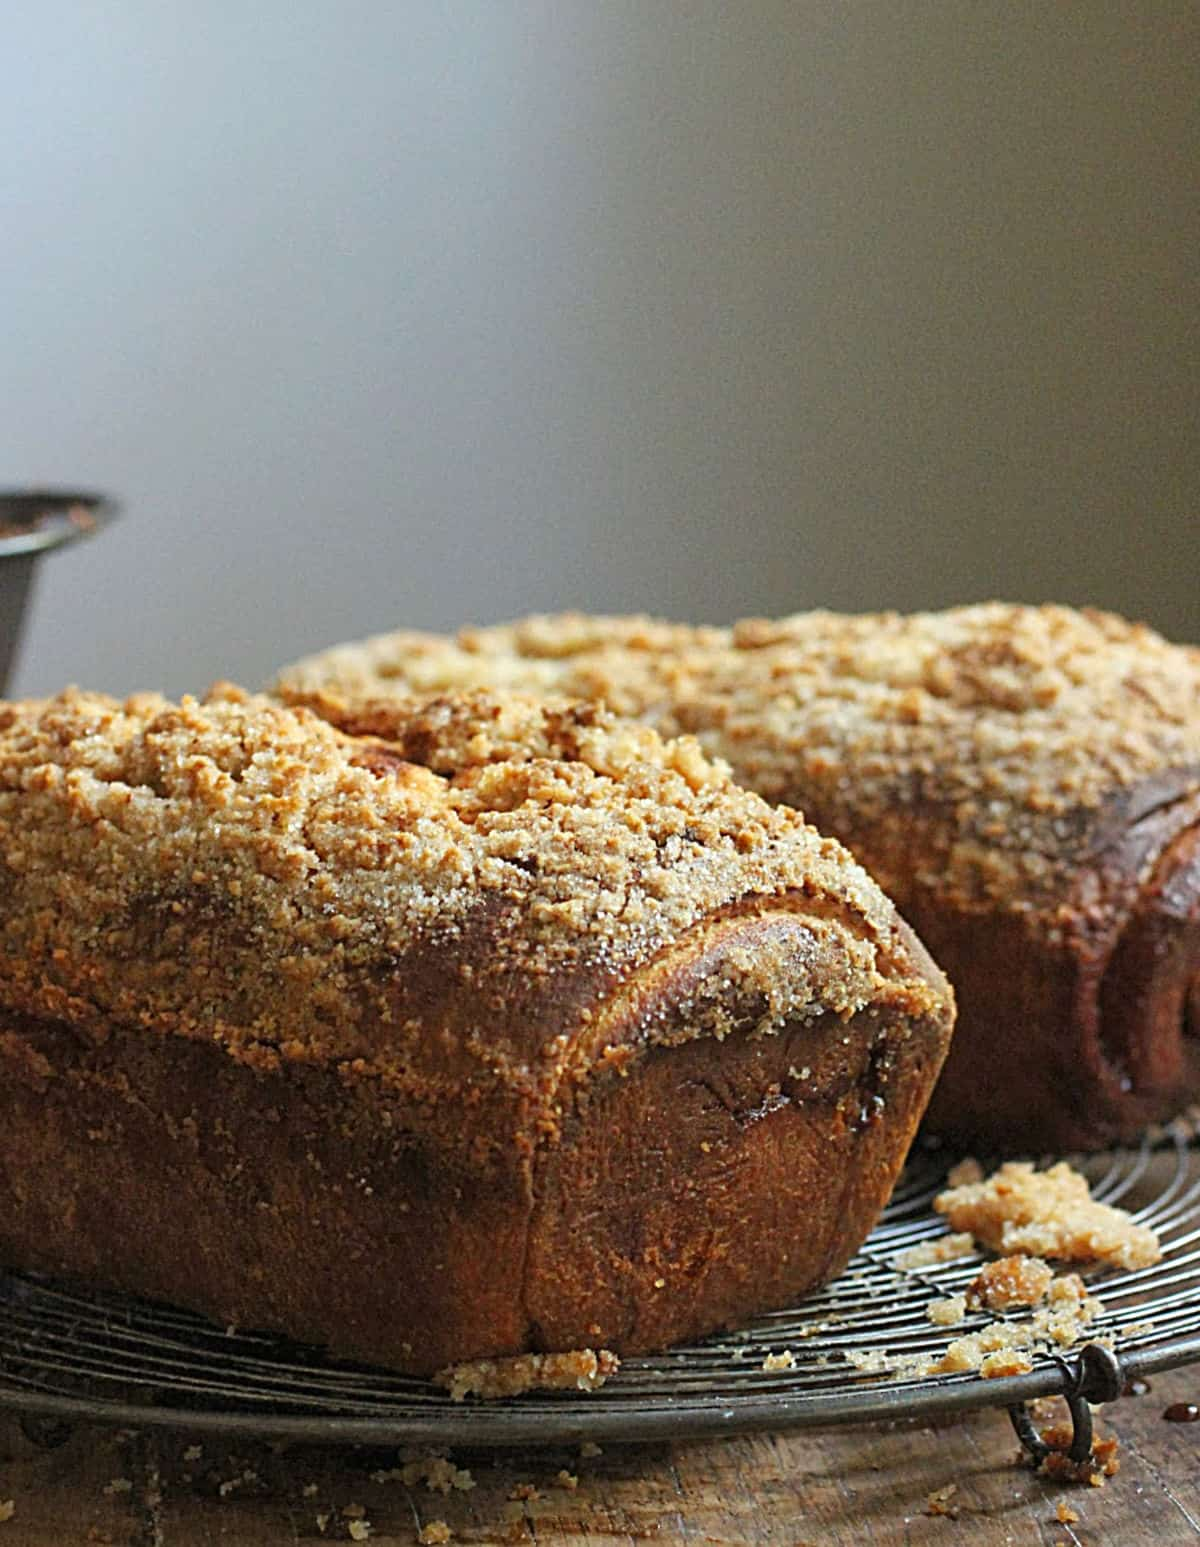 Baked loaves of swirl bread with crumble on a wooden table